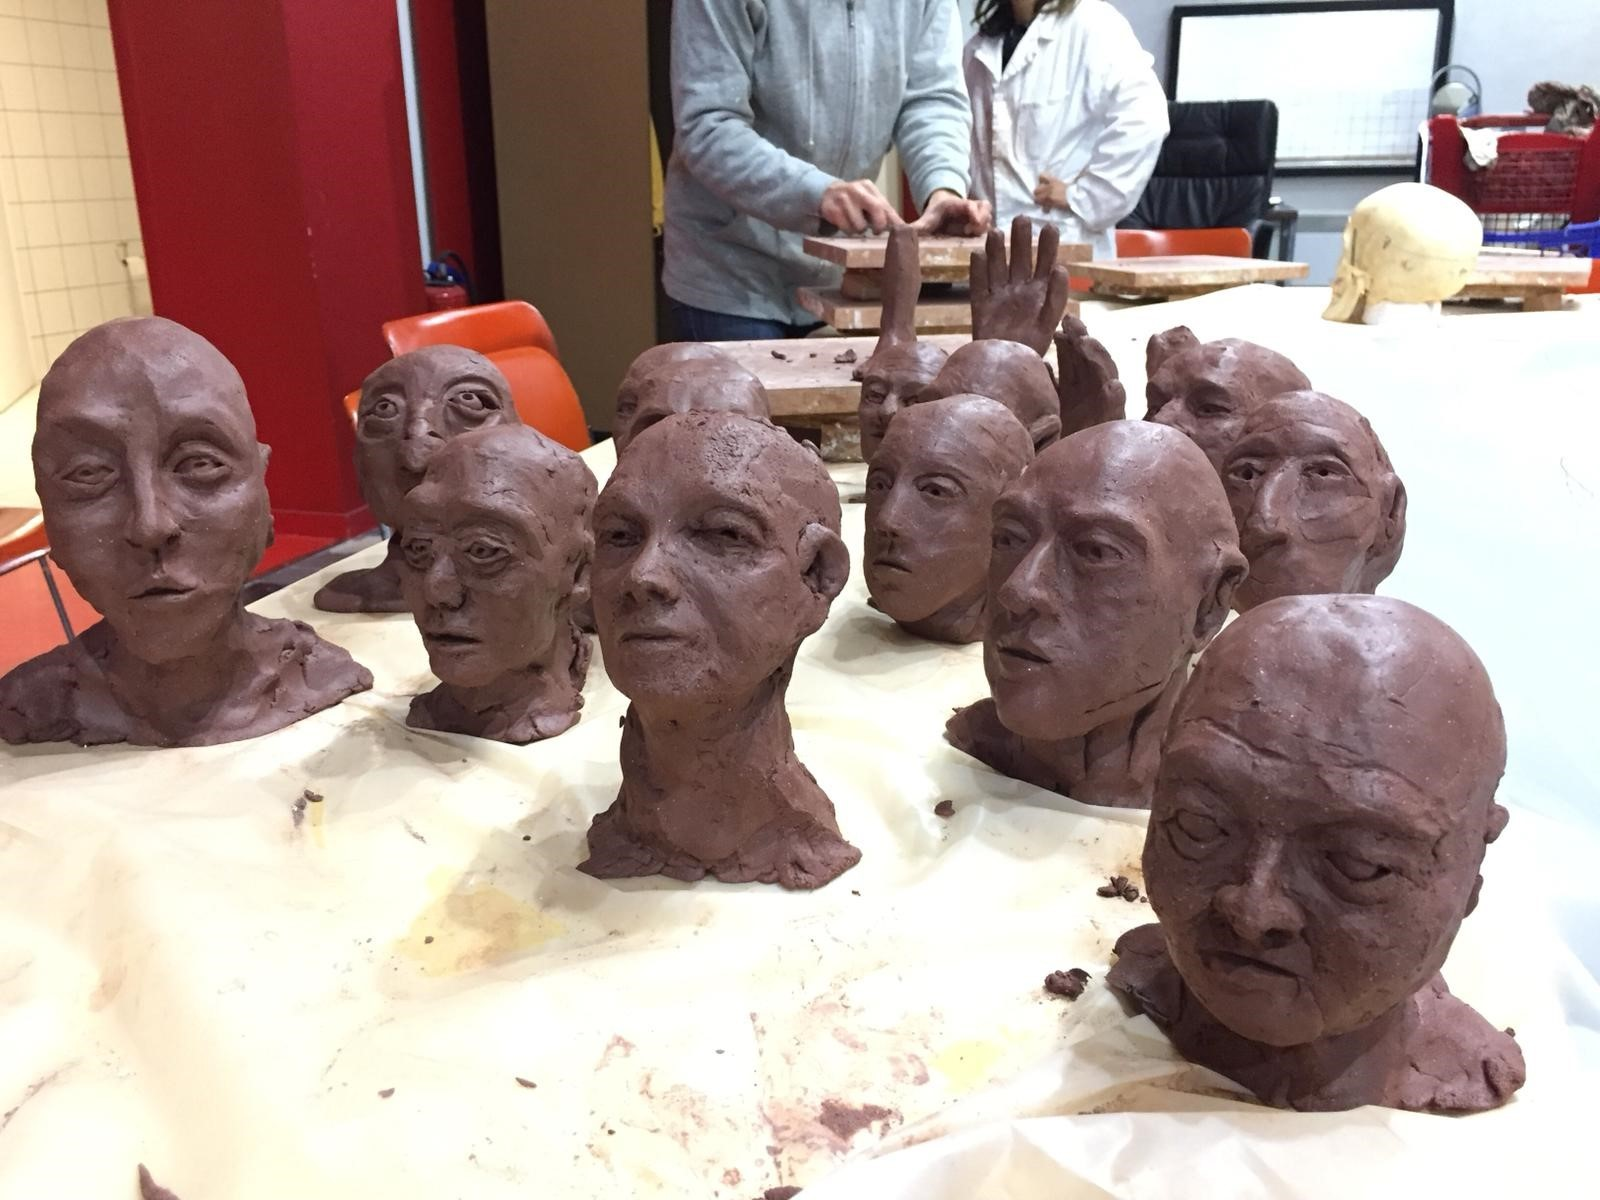 Clay heads in progress.